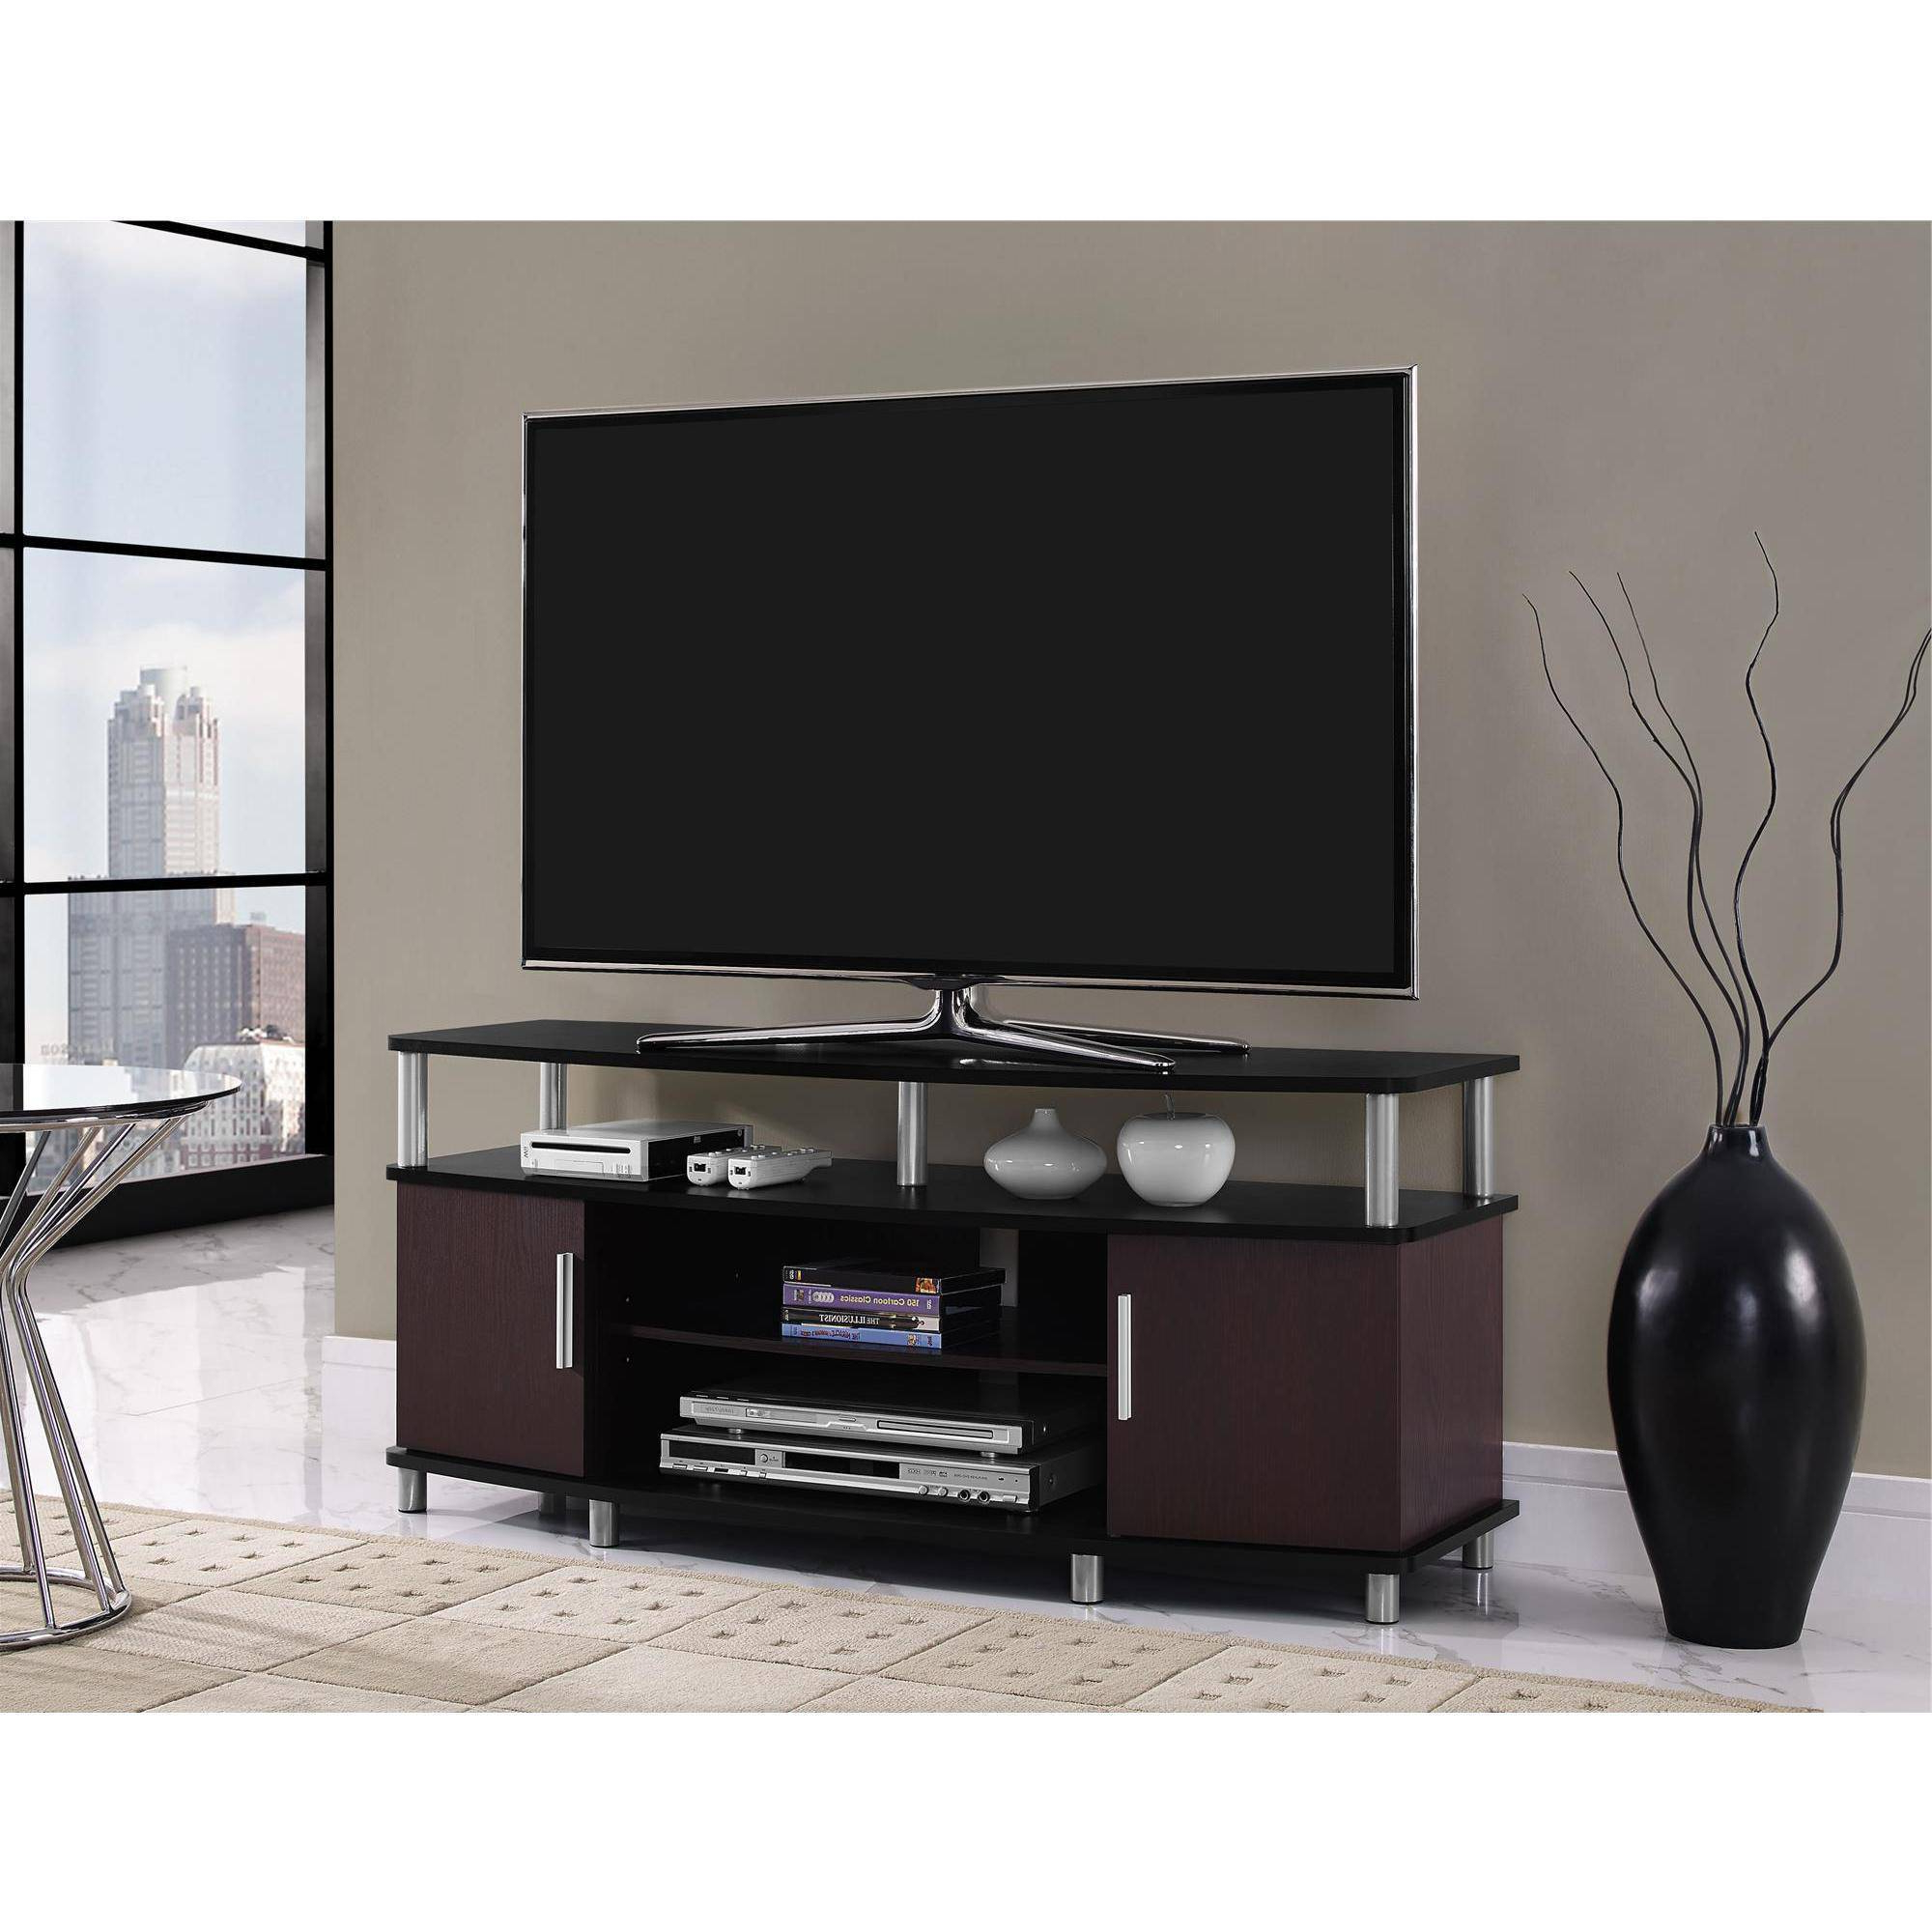 "Entertainment Center Tv Stands Throughout Well Liked Carson Tv Stand, For Tvs Up To 50"", Multiple Finishes – Walmart (View 2 of 20)"